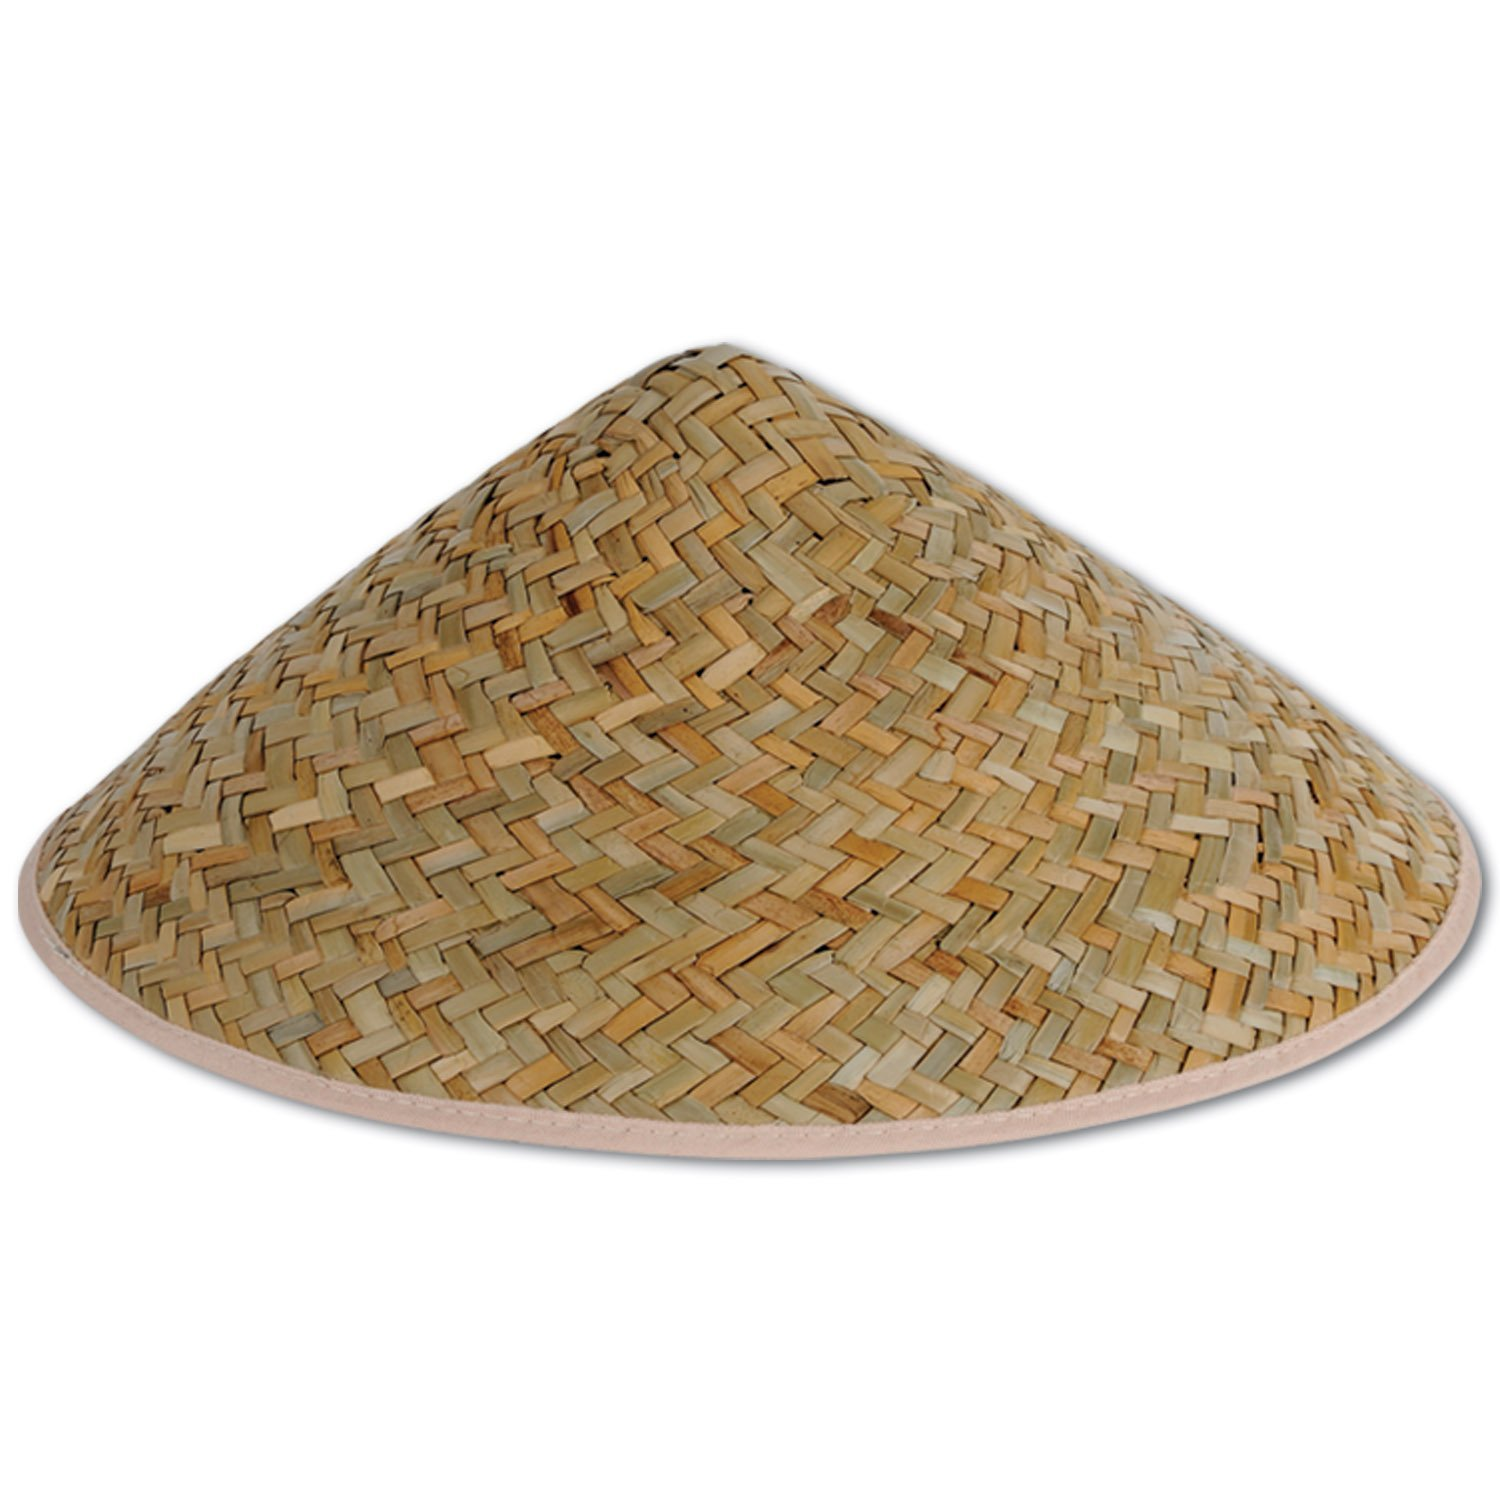 8374e52c775 Asian Vietnamese Japanese Coolie Straw Bamboo Sun Hat Farmer Costume  Accessory